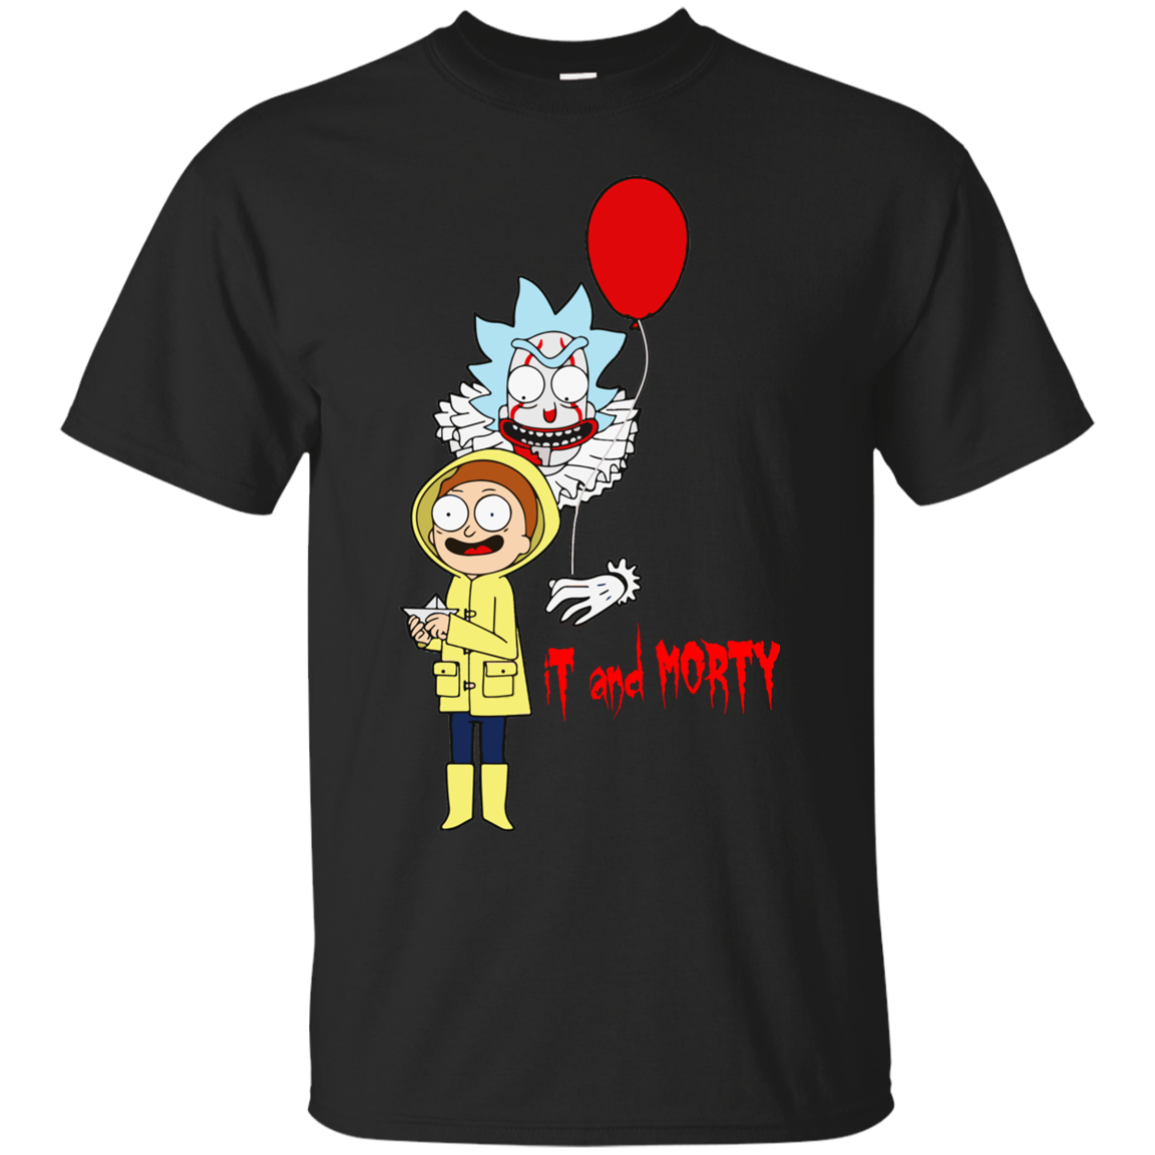 Clown shirt png. Rick and morty it